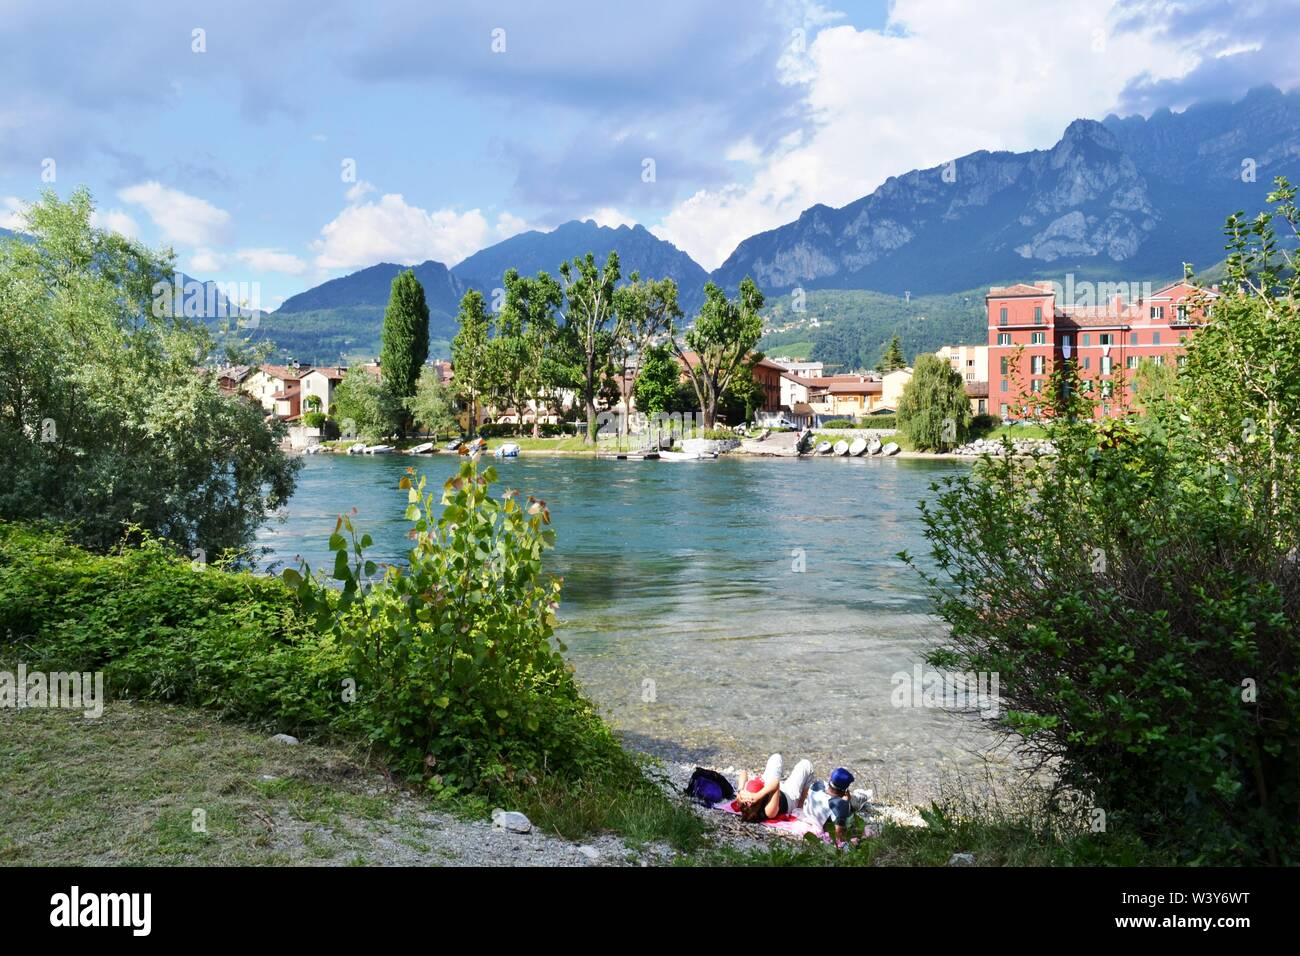 Lecco/Italy - July 10, 2014: Couple of tourist relaxing on the riverbank of Adda looking at Lecco Pescarenico fisherman district with mountains above. Stock Photo